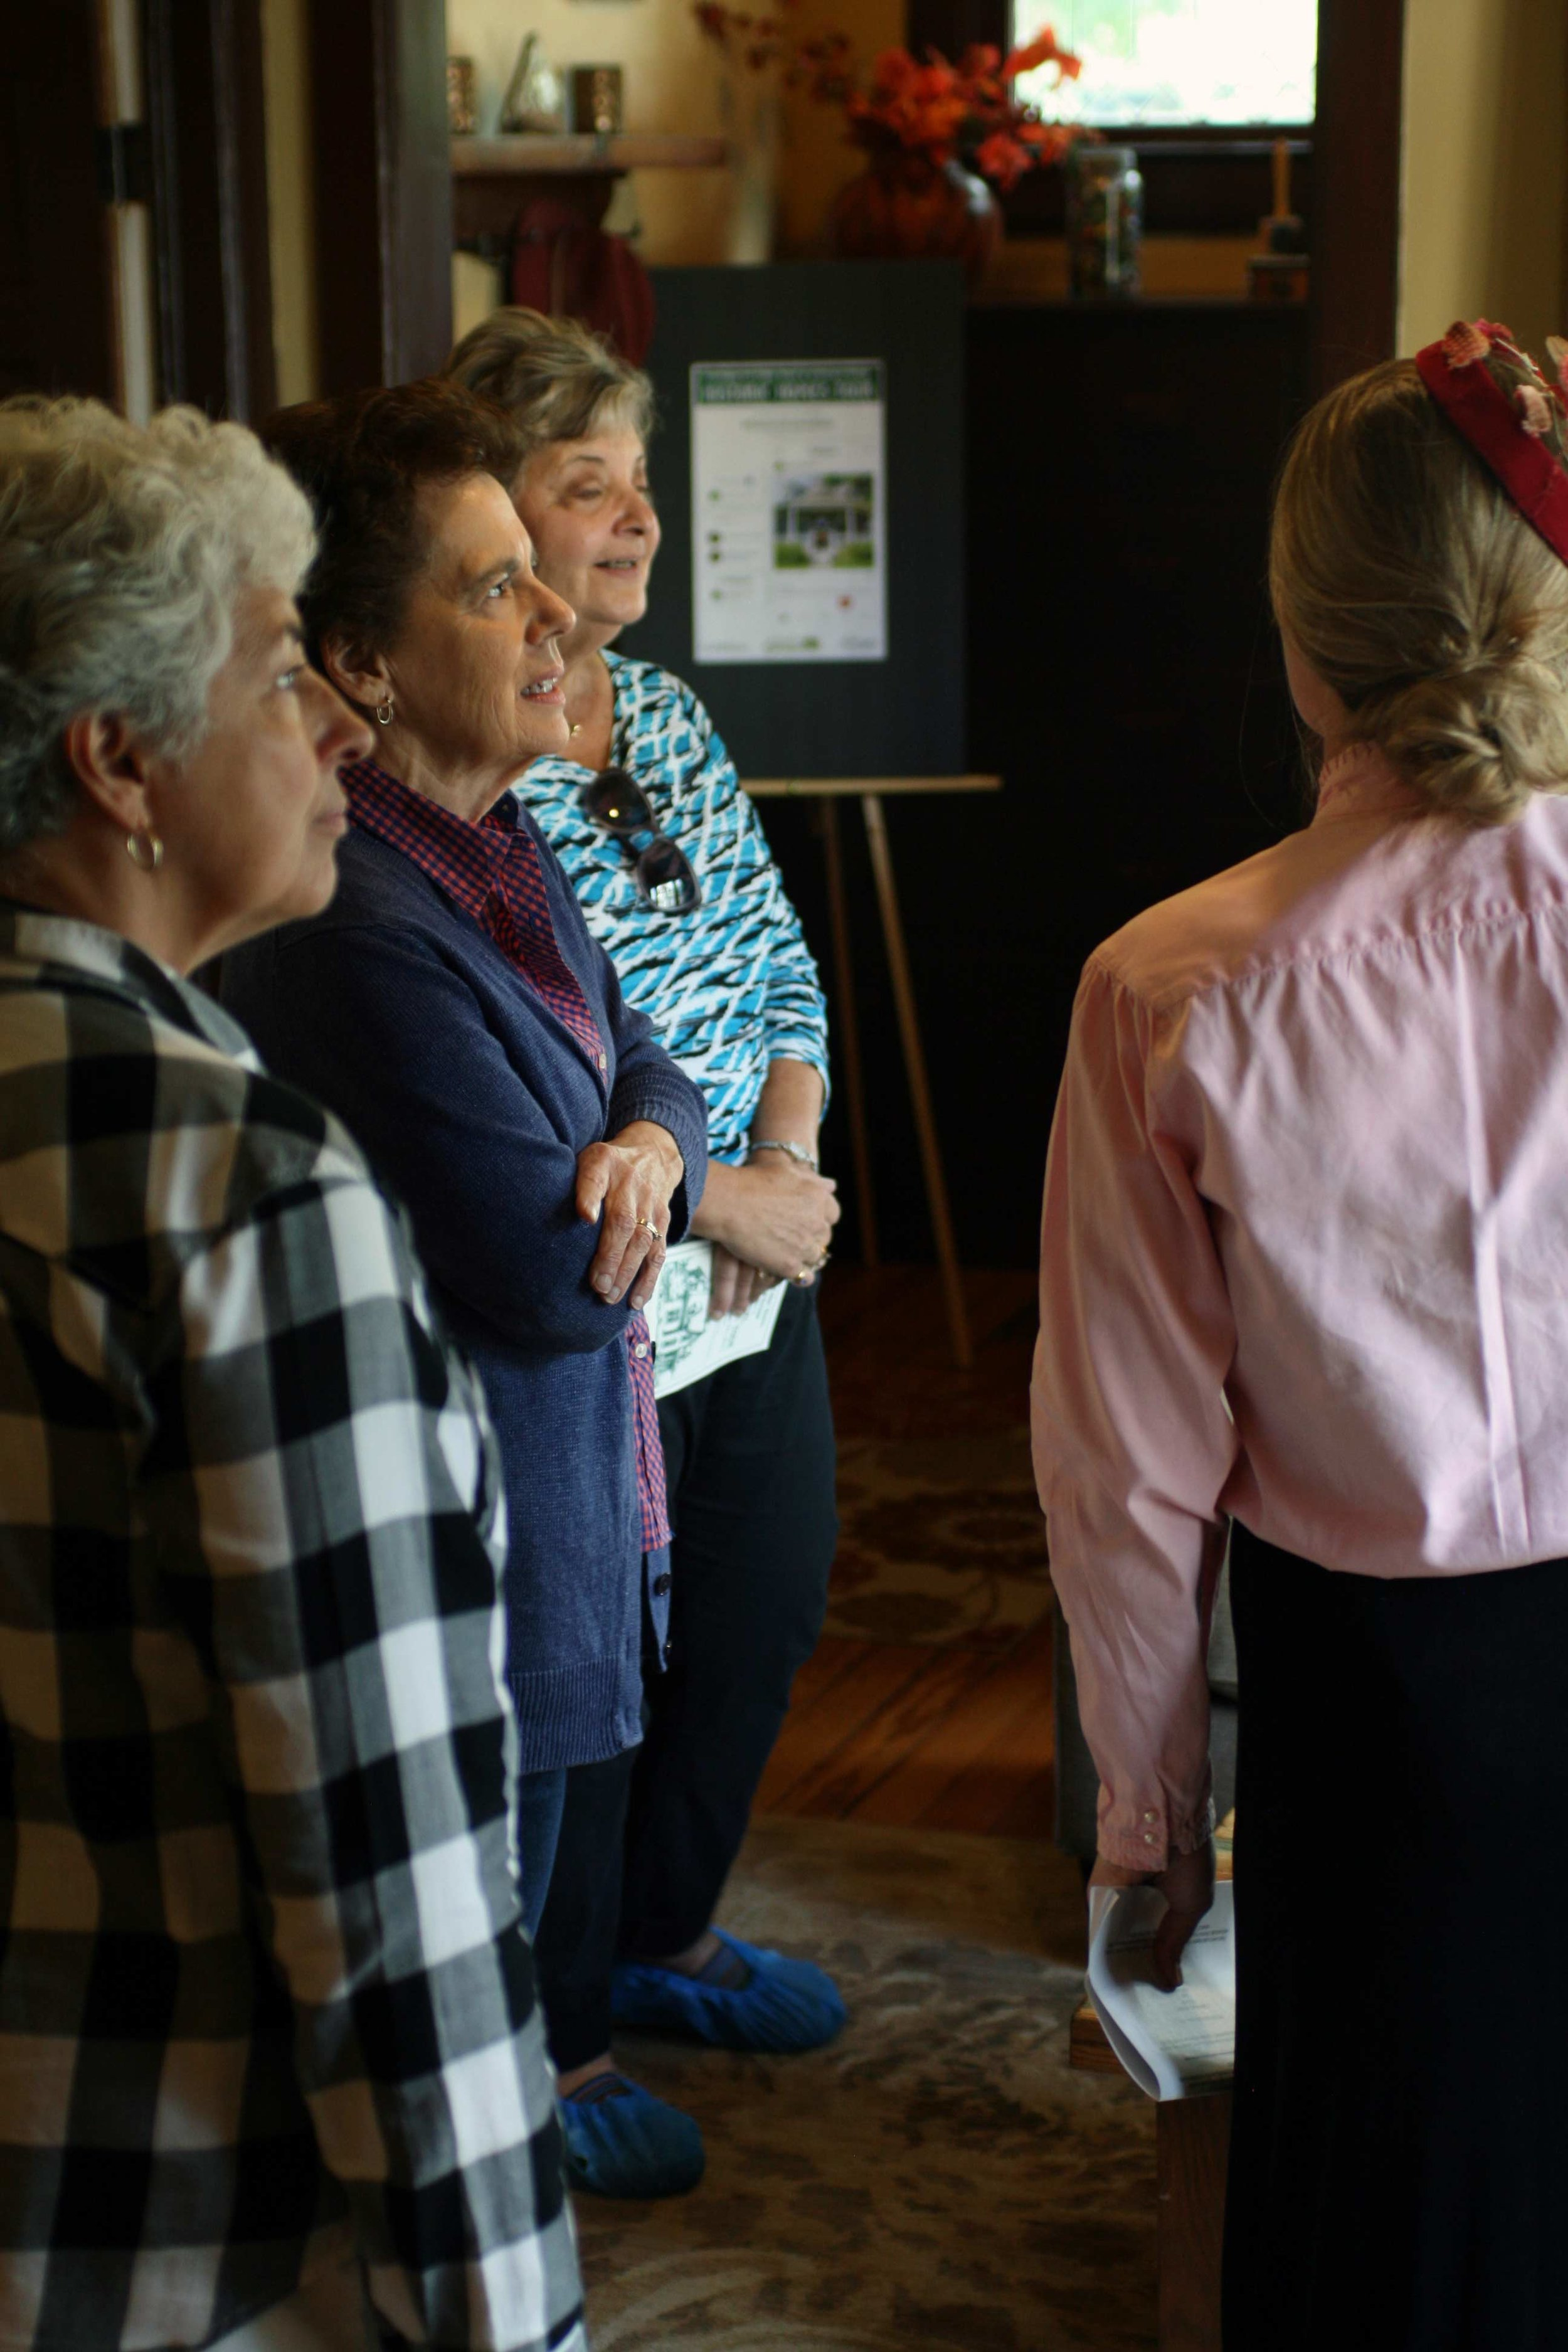 A volunteer docent informs attendees about the antique furniture in a historic home on Smith Street in Fort Collins